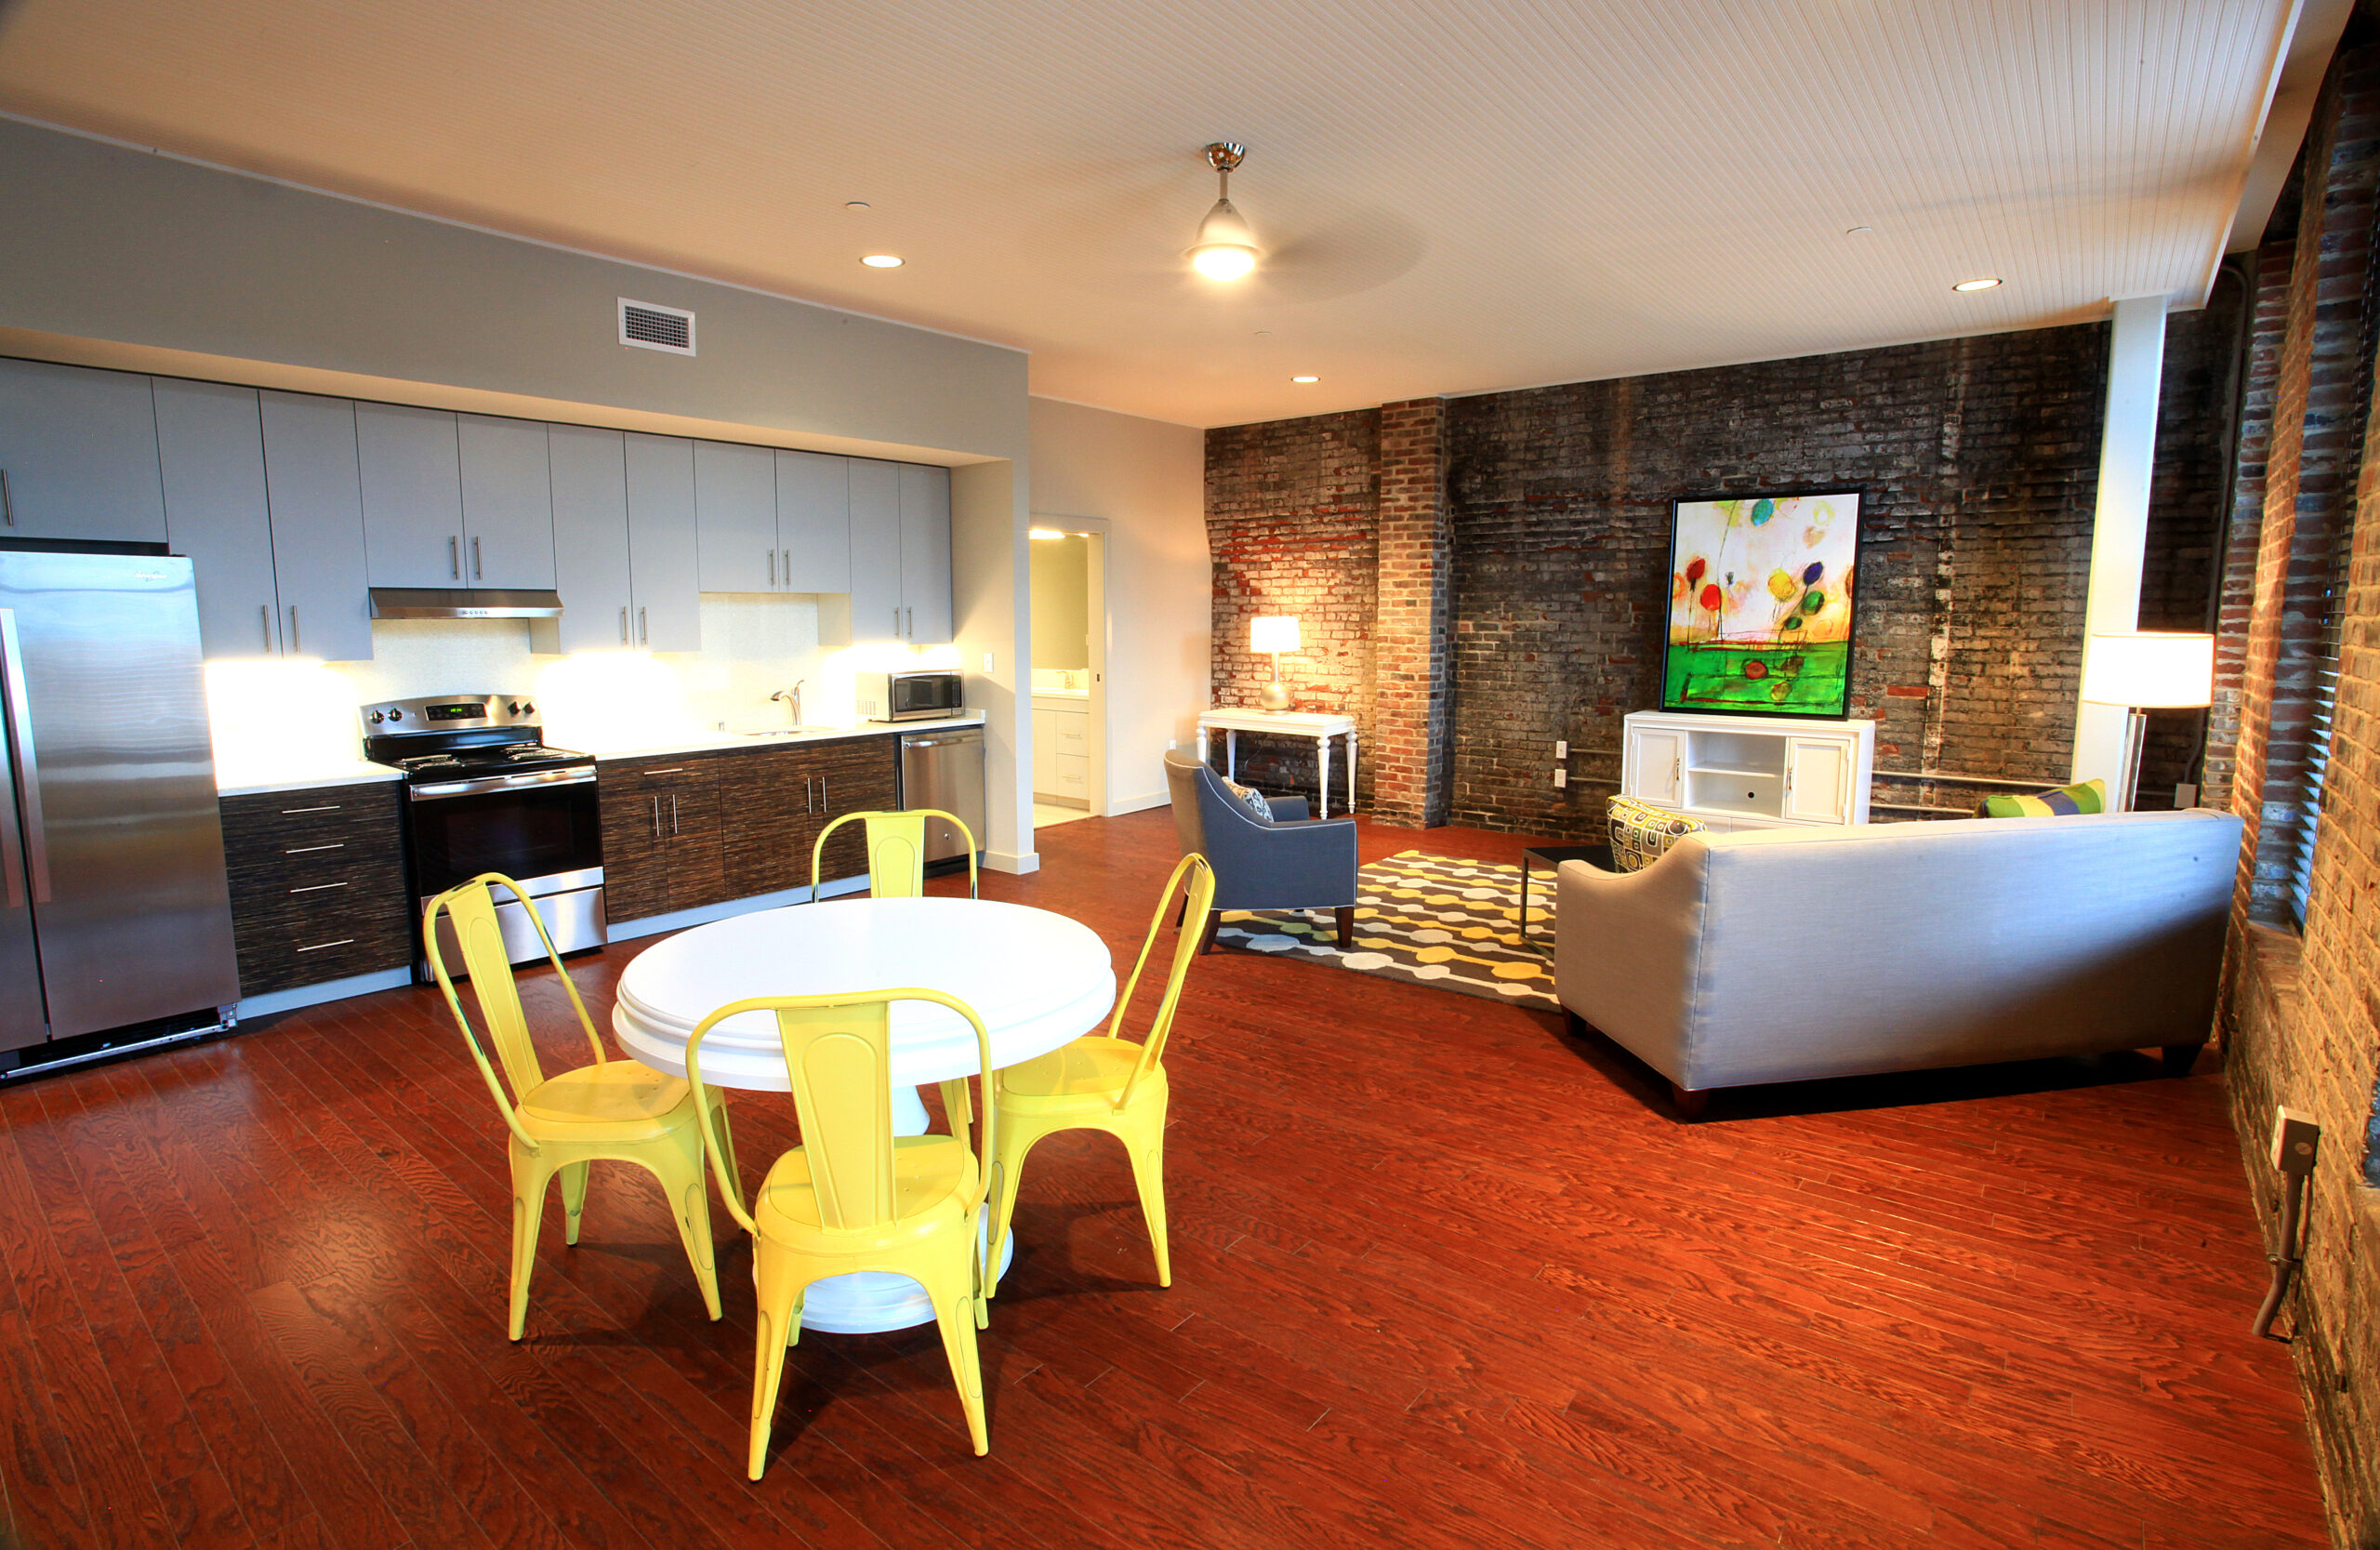 Mulloy listings - 111 Whiskey Row, Apartment & Condo Building